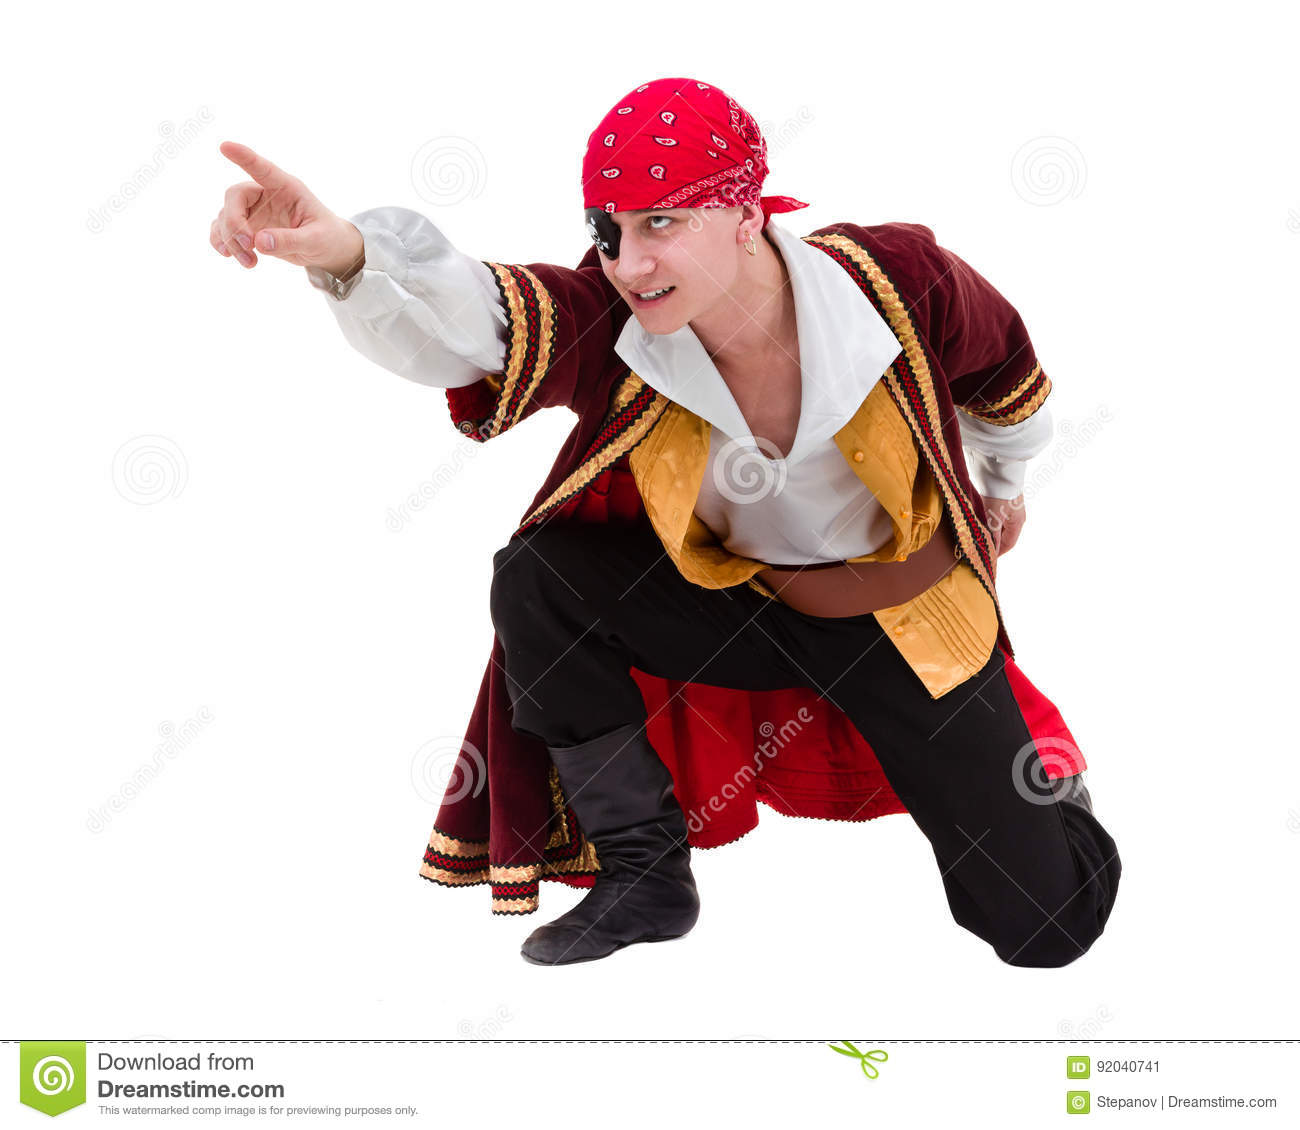 Man wearing a pirate costume posing with pointing gesture, isolated on white